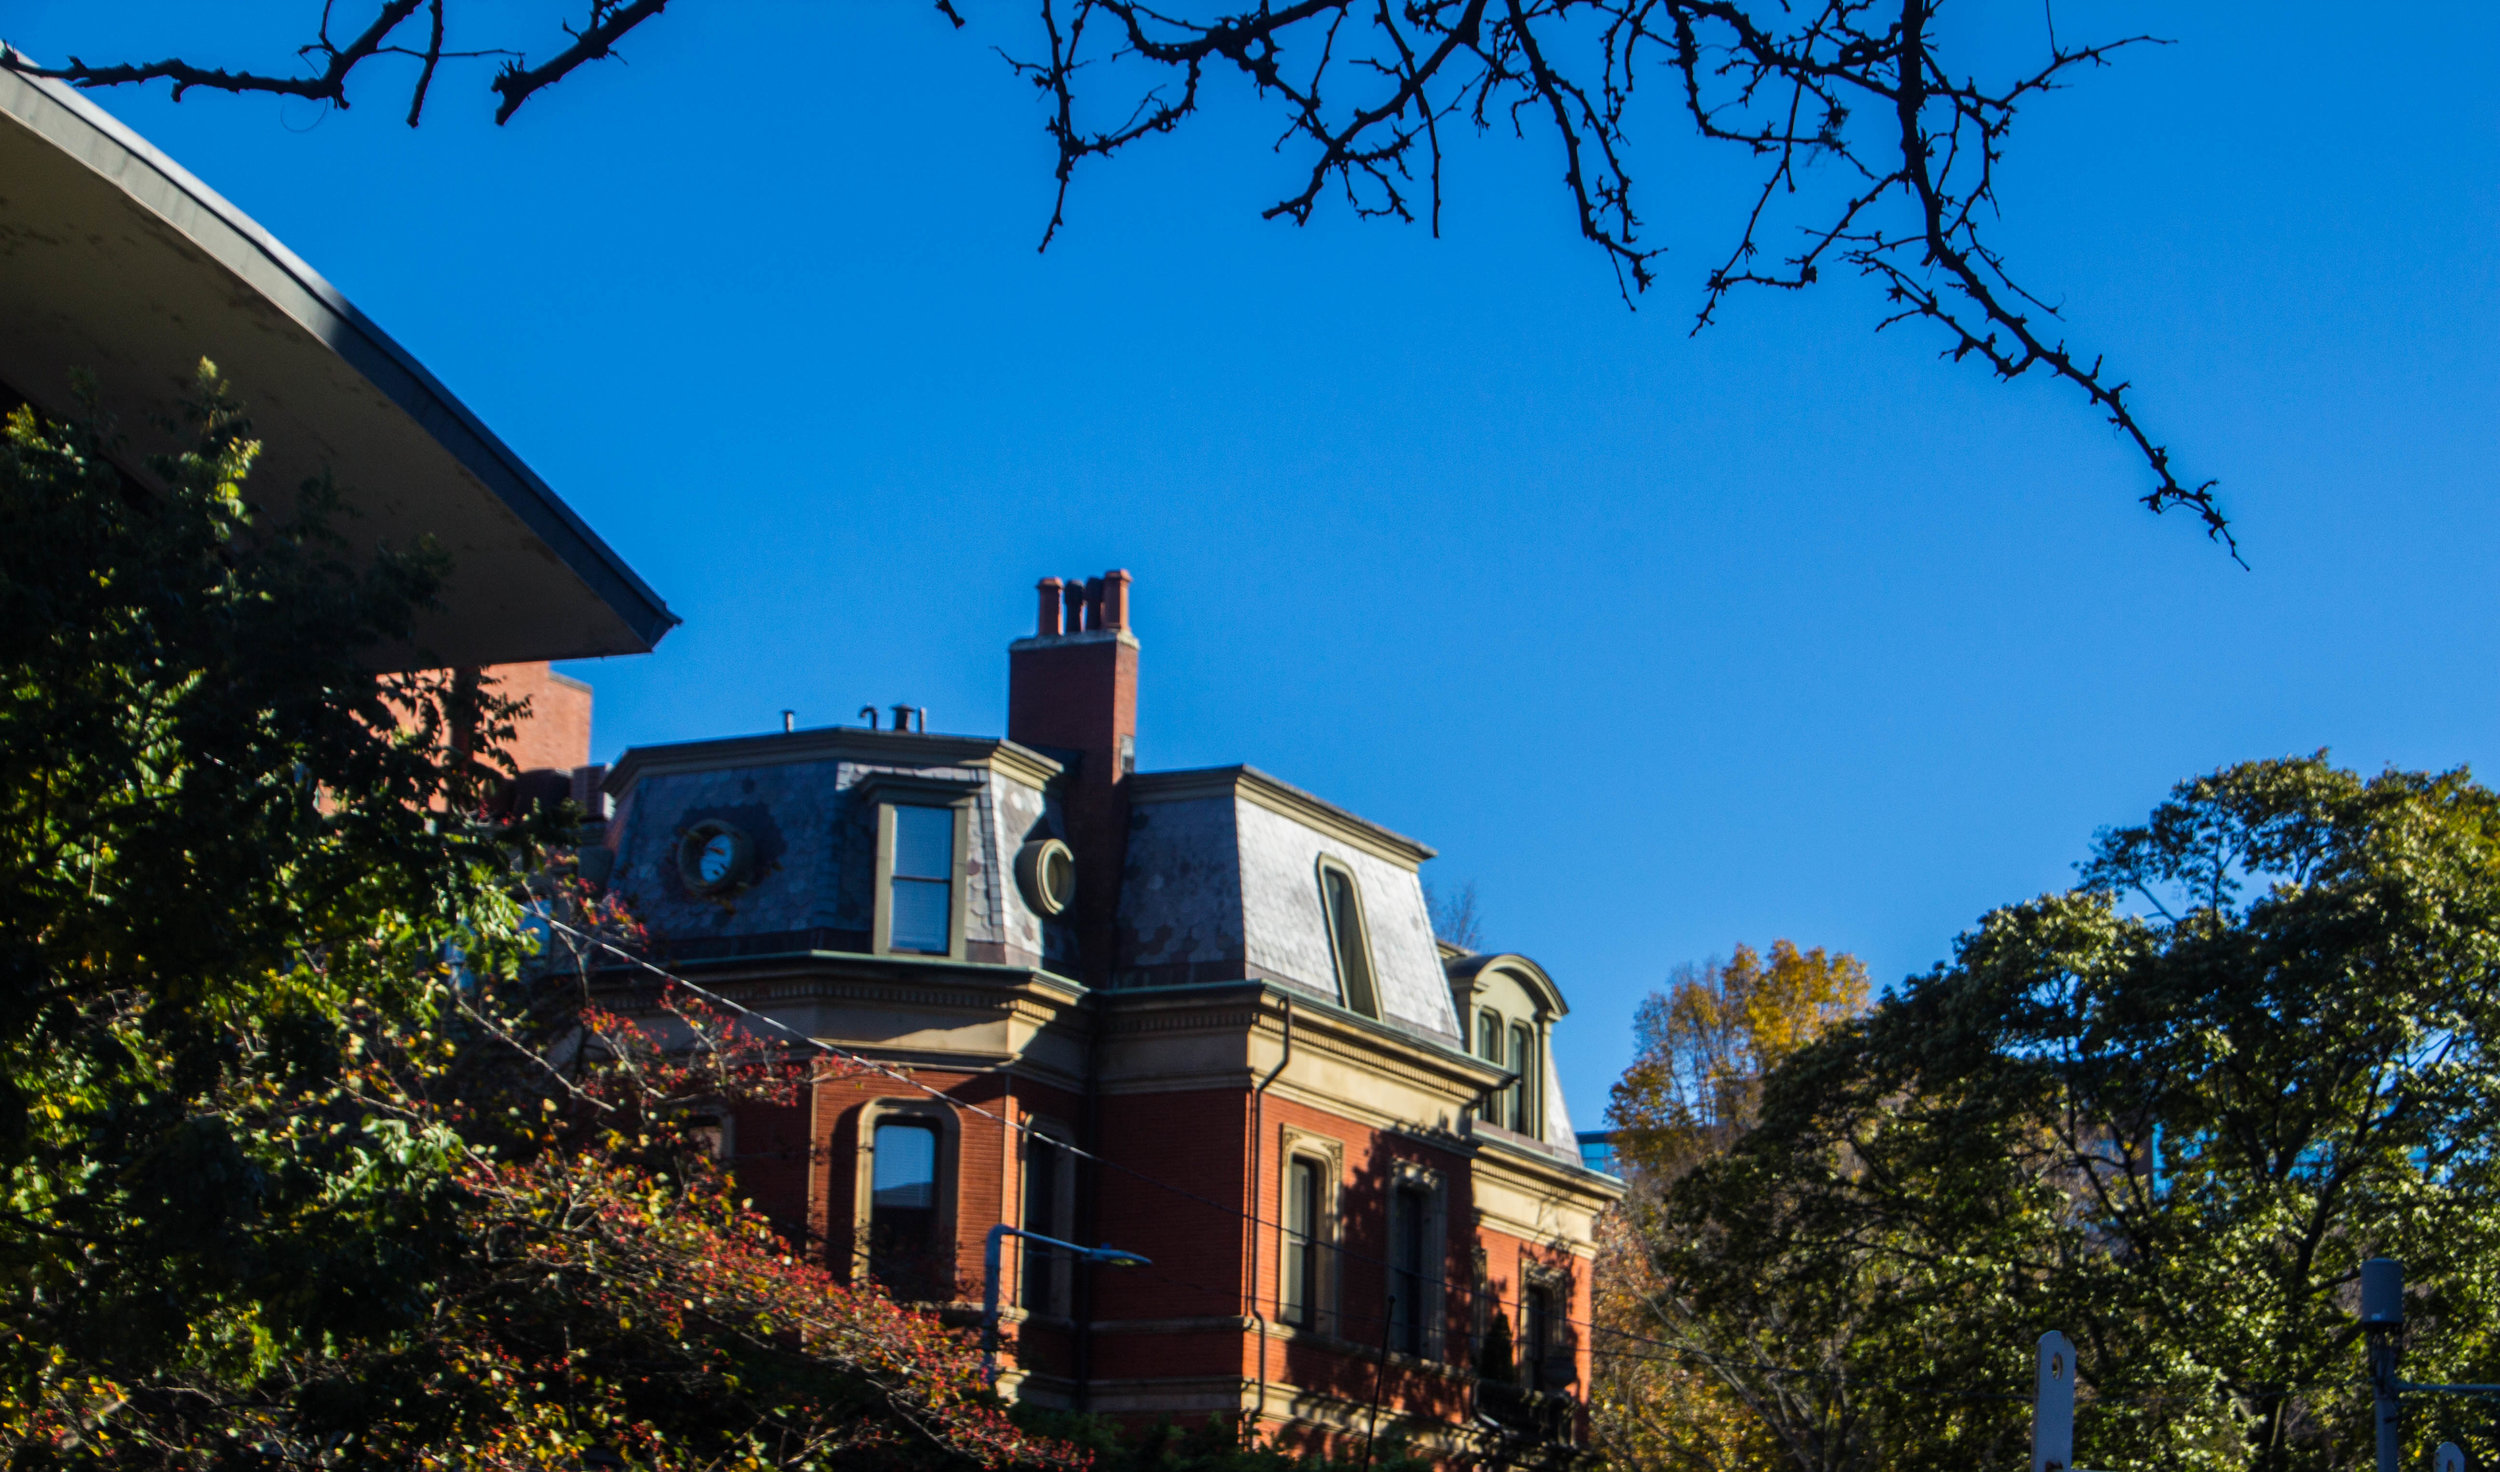 back-bay-boston-in-the-fall-photography-14.jpg